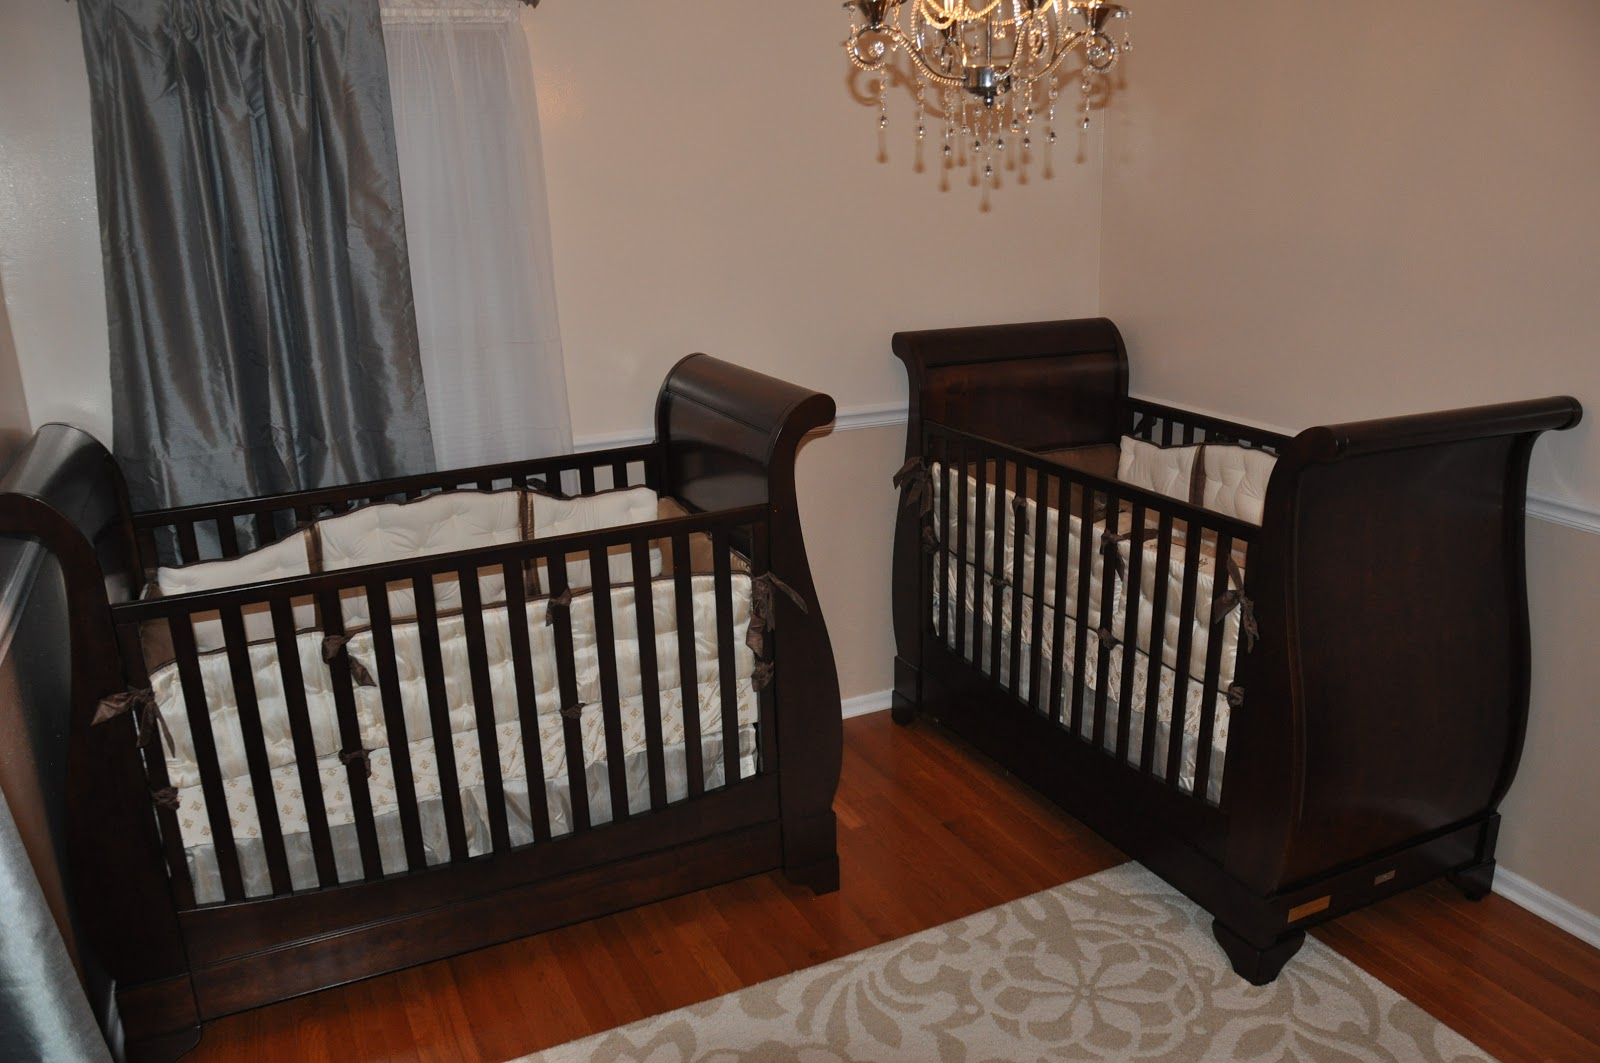 Restoration Hardware Cribs | Affordable Iron Crib | Used Restoration Hardware Crib